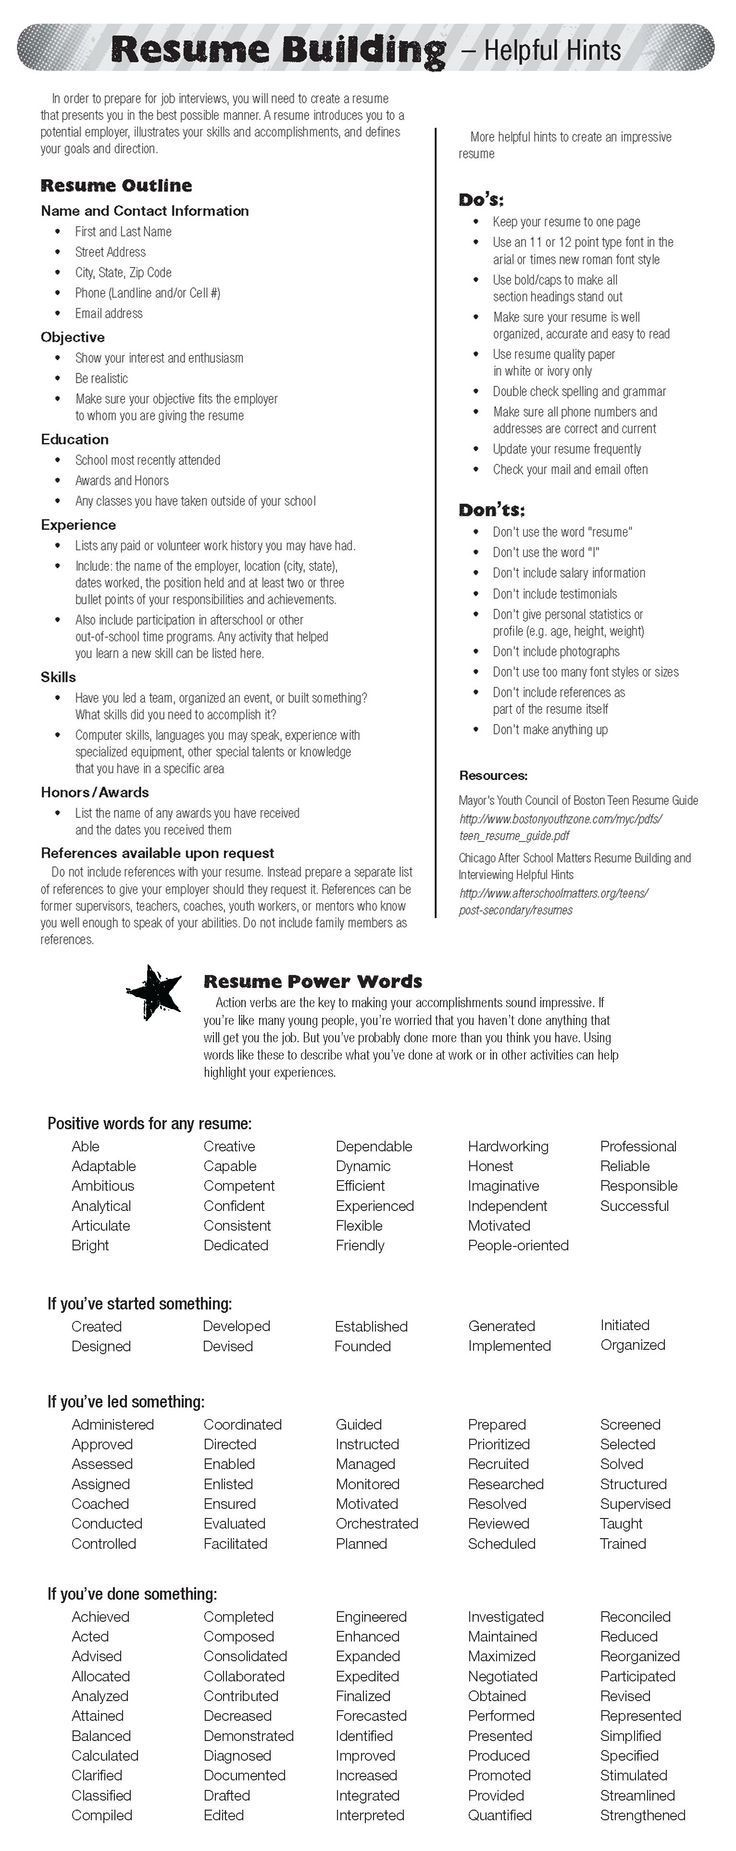 Resume Premier Education Optimal Resume best 25 resume format ideas on pinterest check out todays building tips employment jobs resume